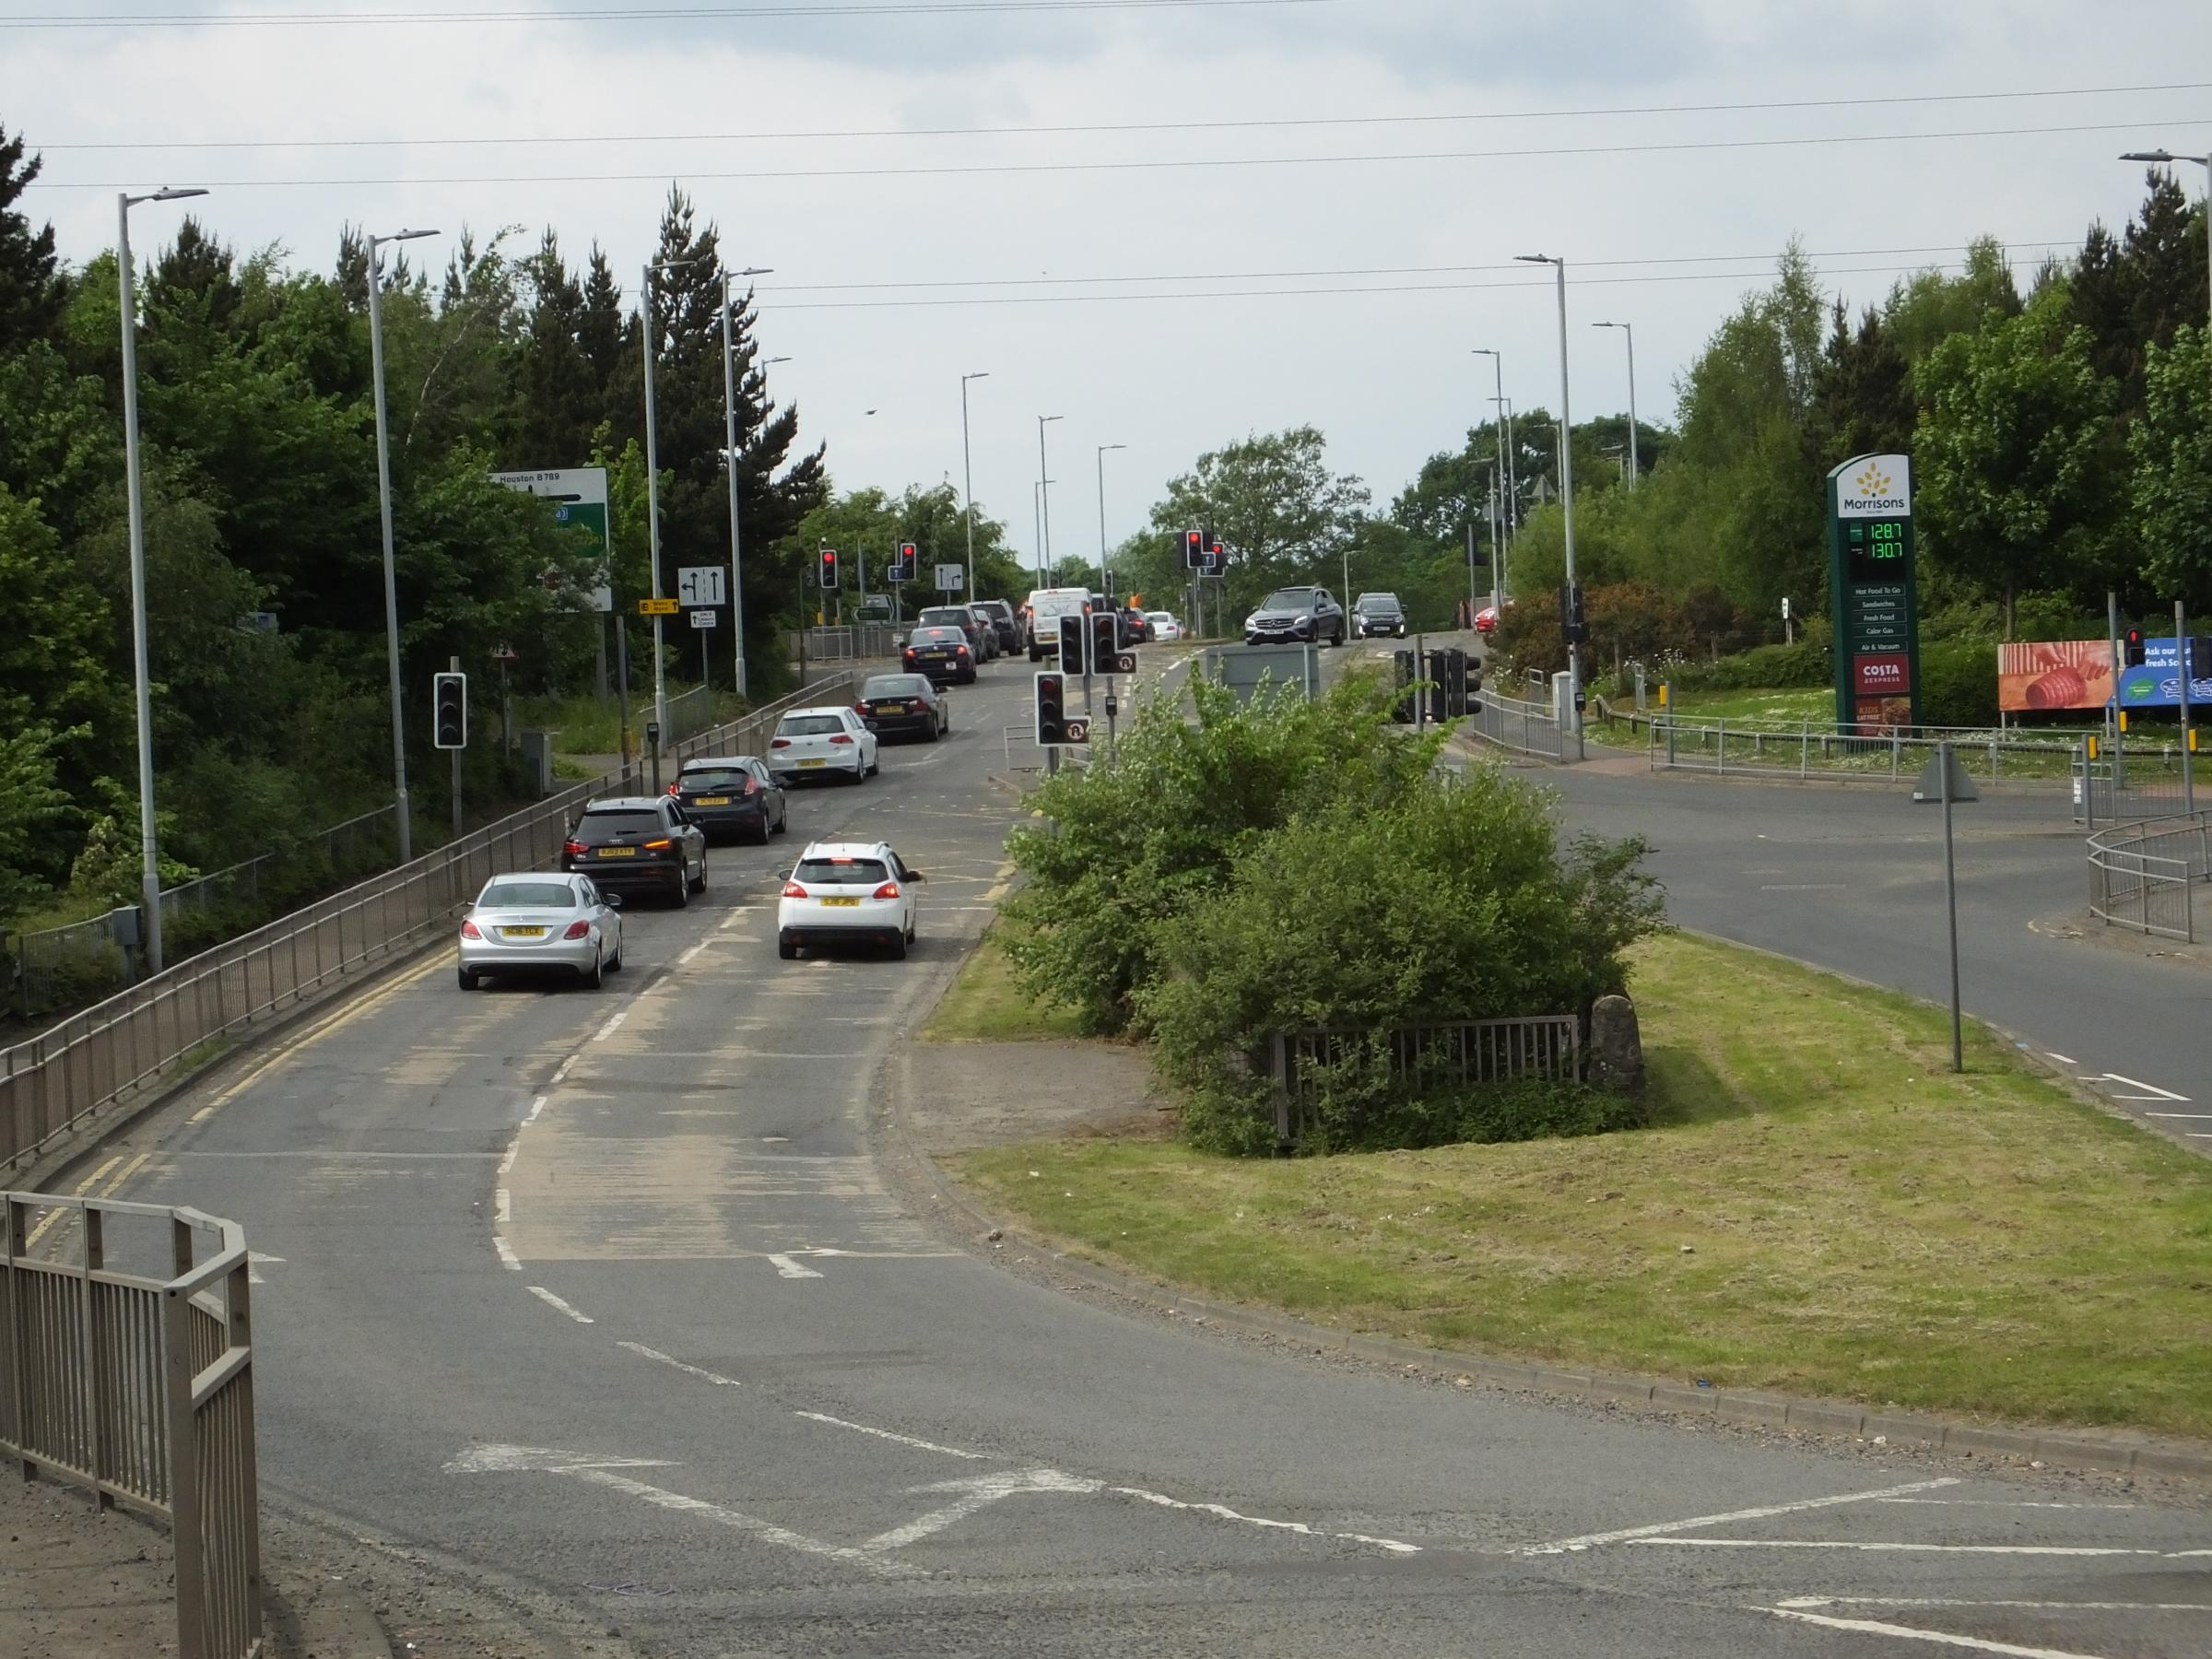 The incident took place when the teenager threatened to jump at this flyover at the A737 in Johnstone